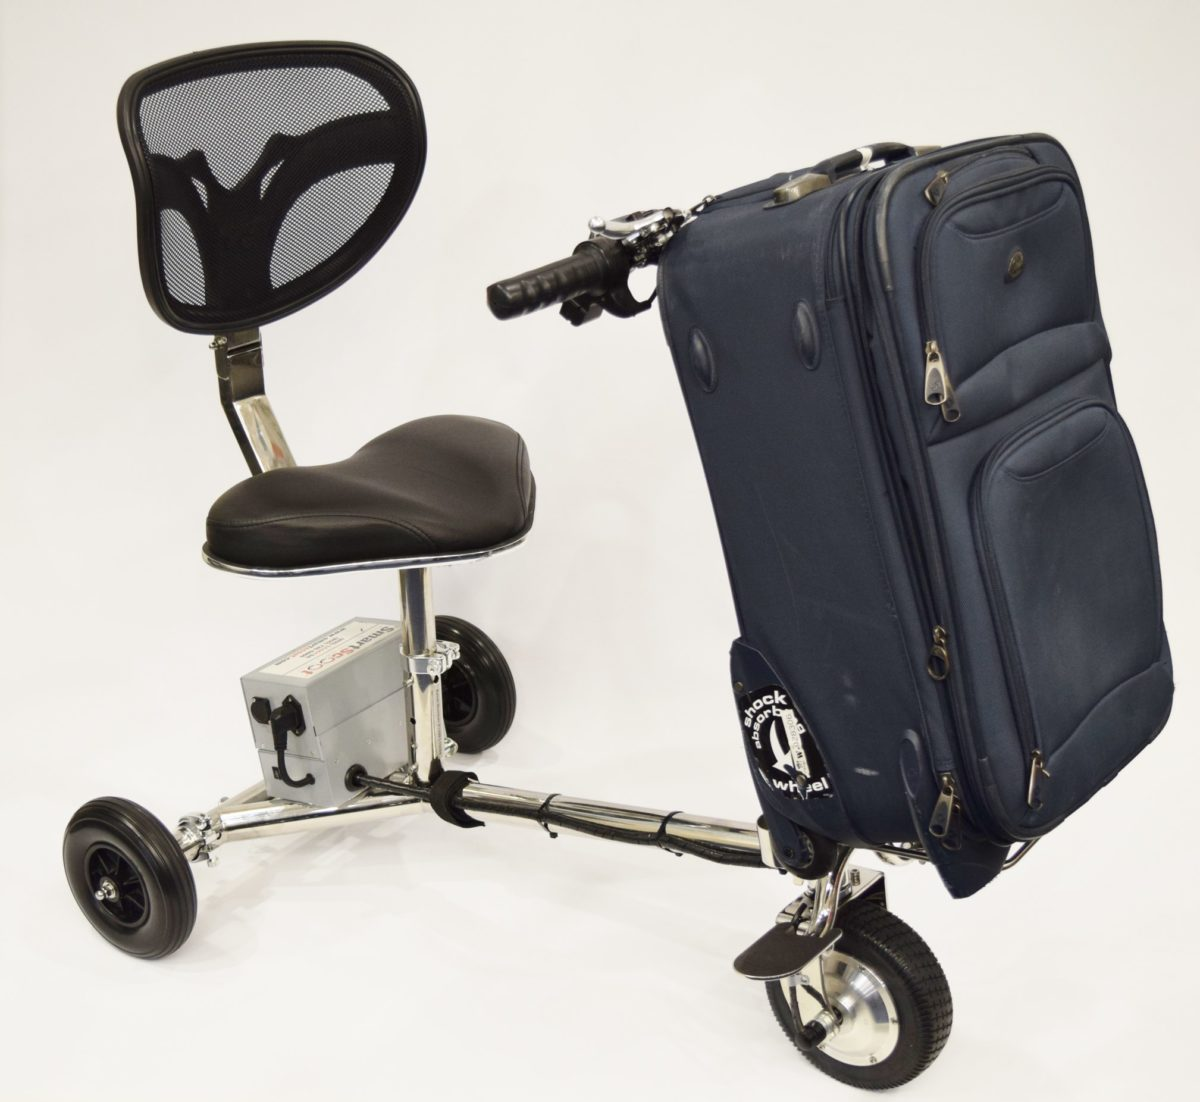 The Latest Features and Capabilities of the SmartScoot ™ Mobility